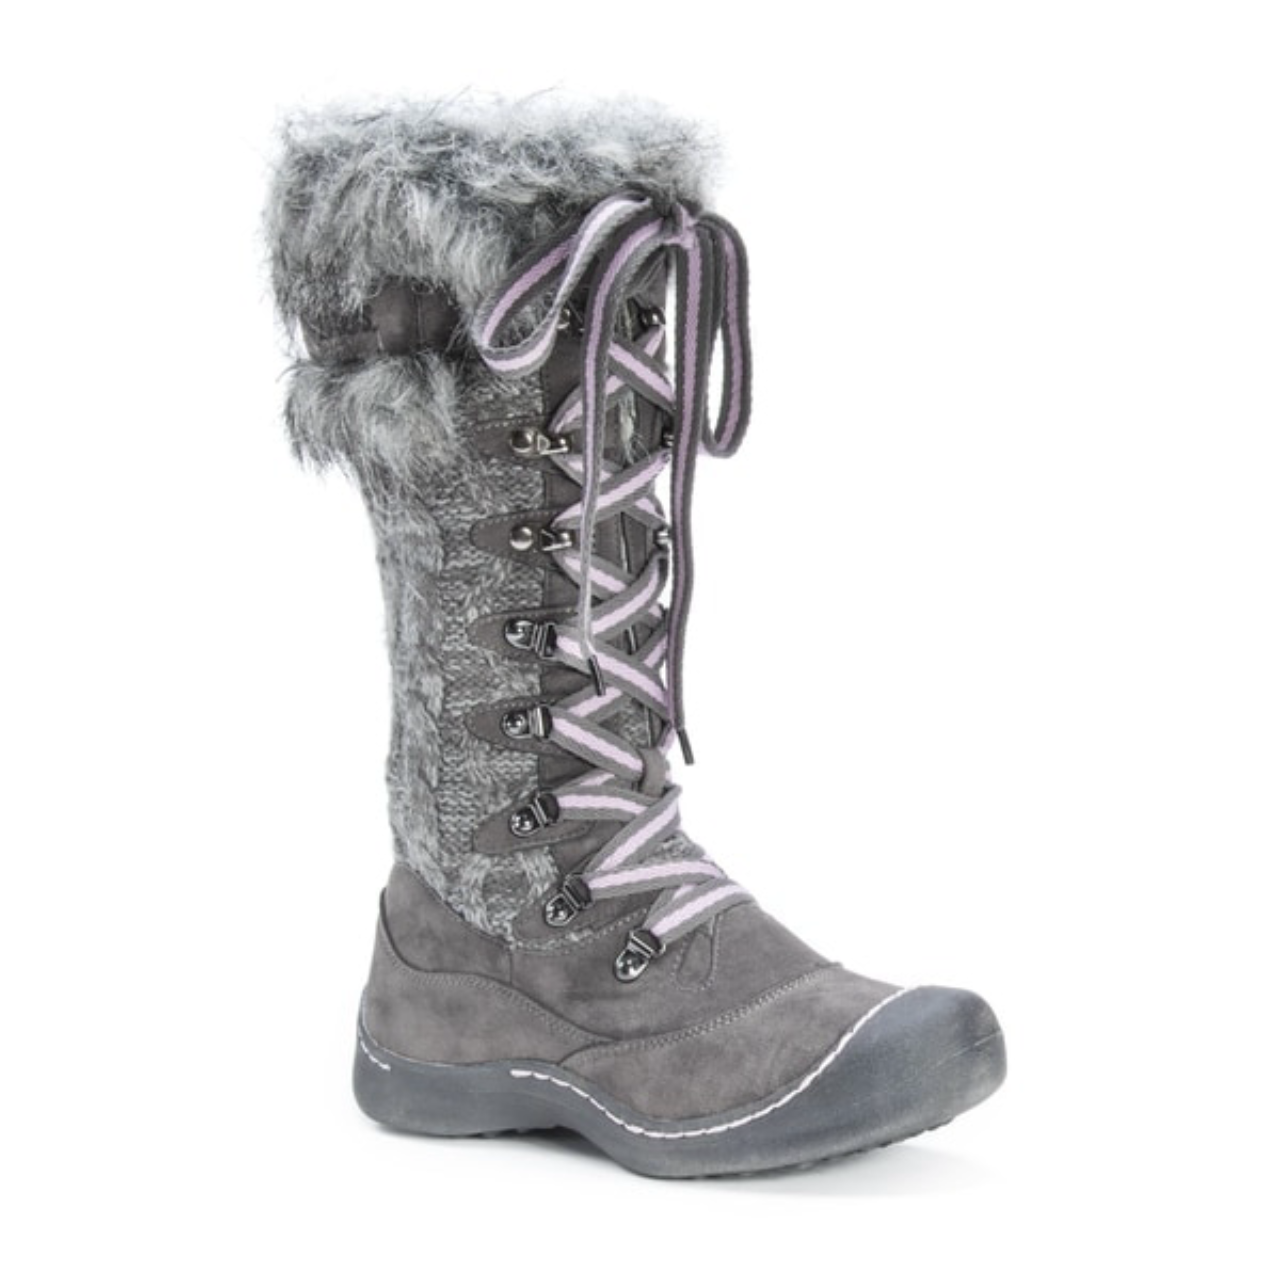 Muk Luks Gwen Polyester/Faux Fur Winter Snow Stivali Grey Donna Size 9